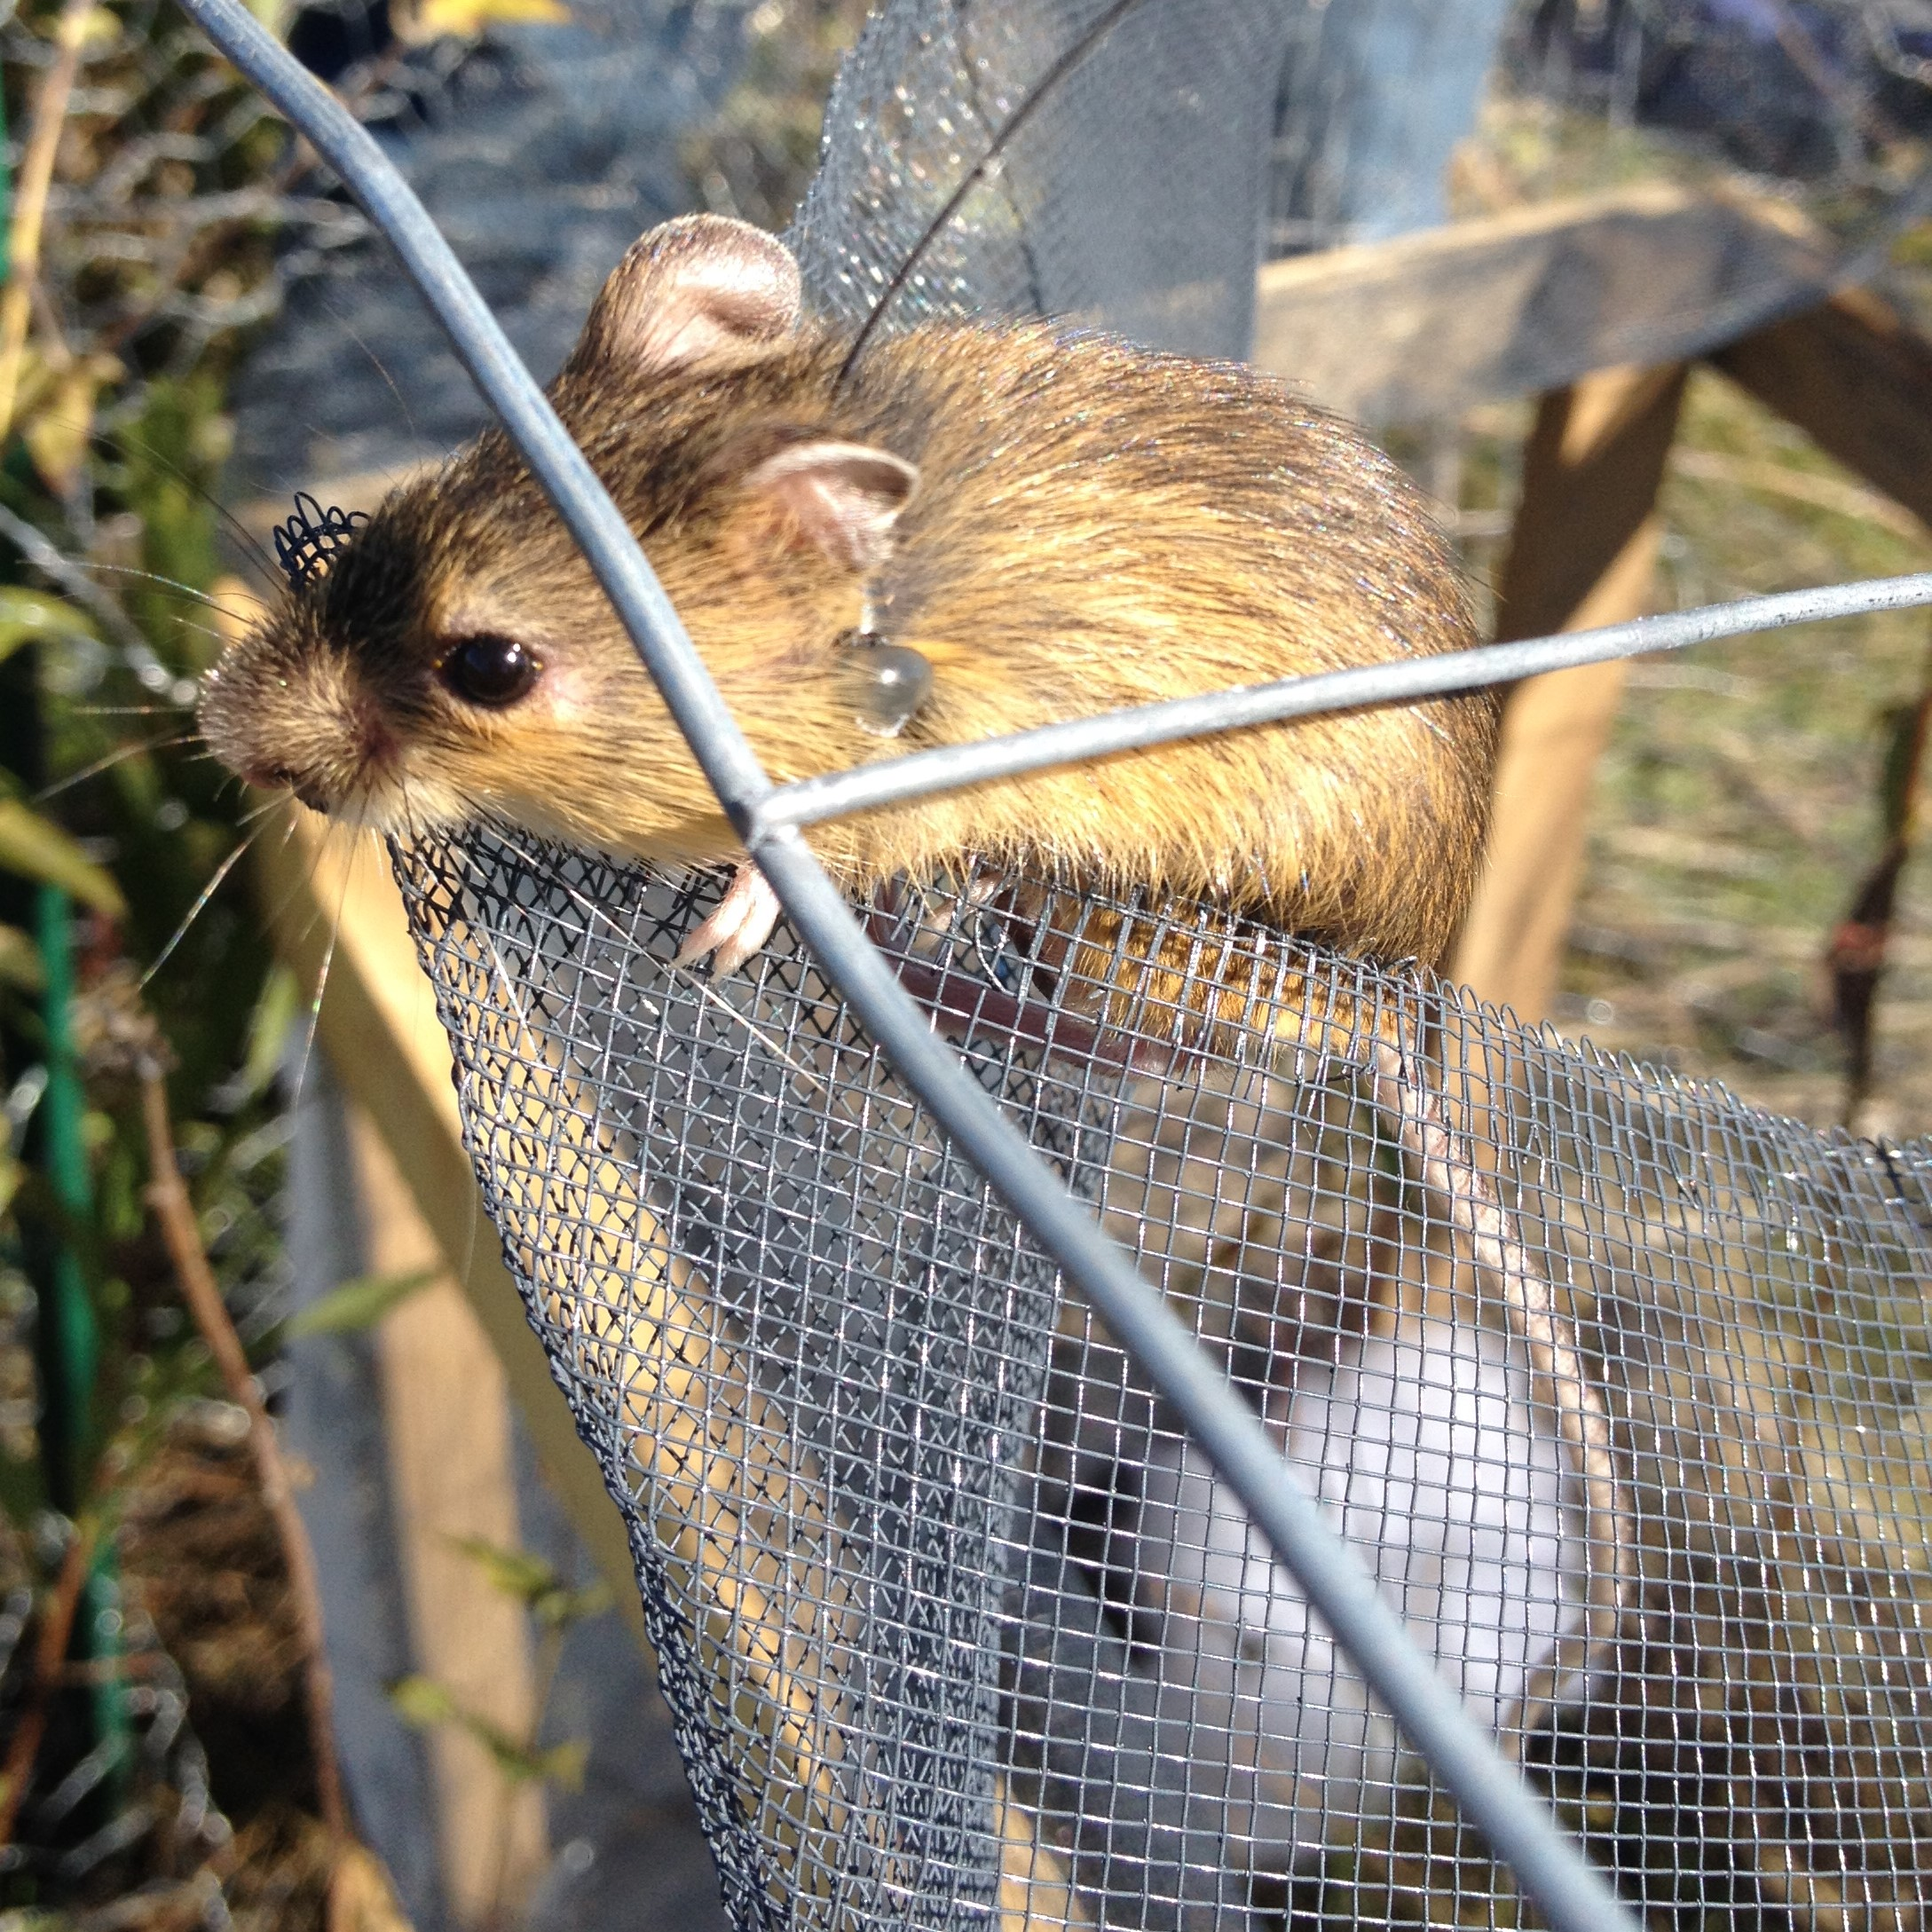 Meadow jumping mouse climbing out of its enclosure after the acclimation period.